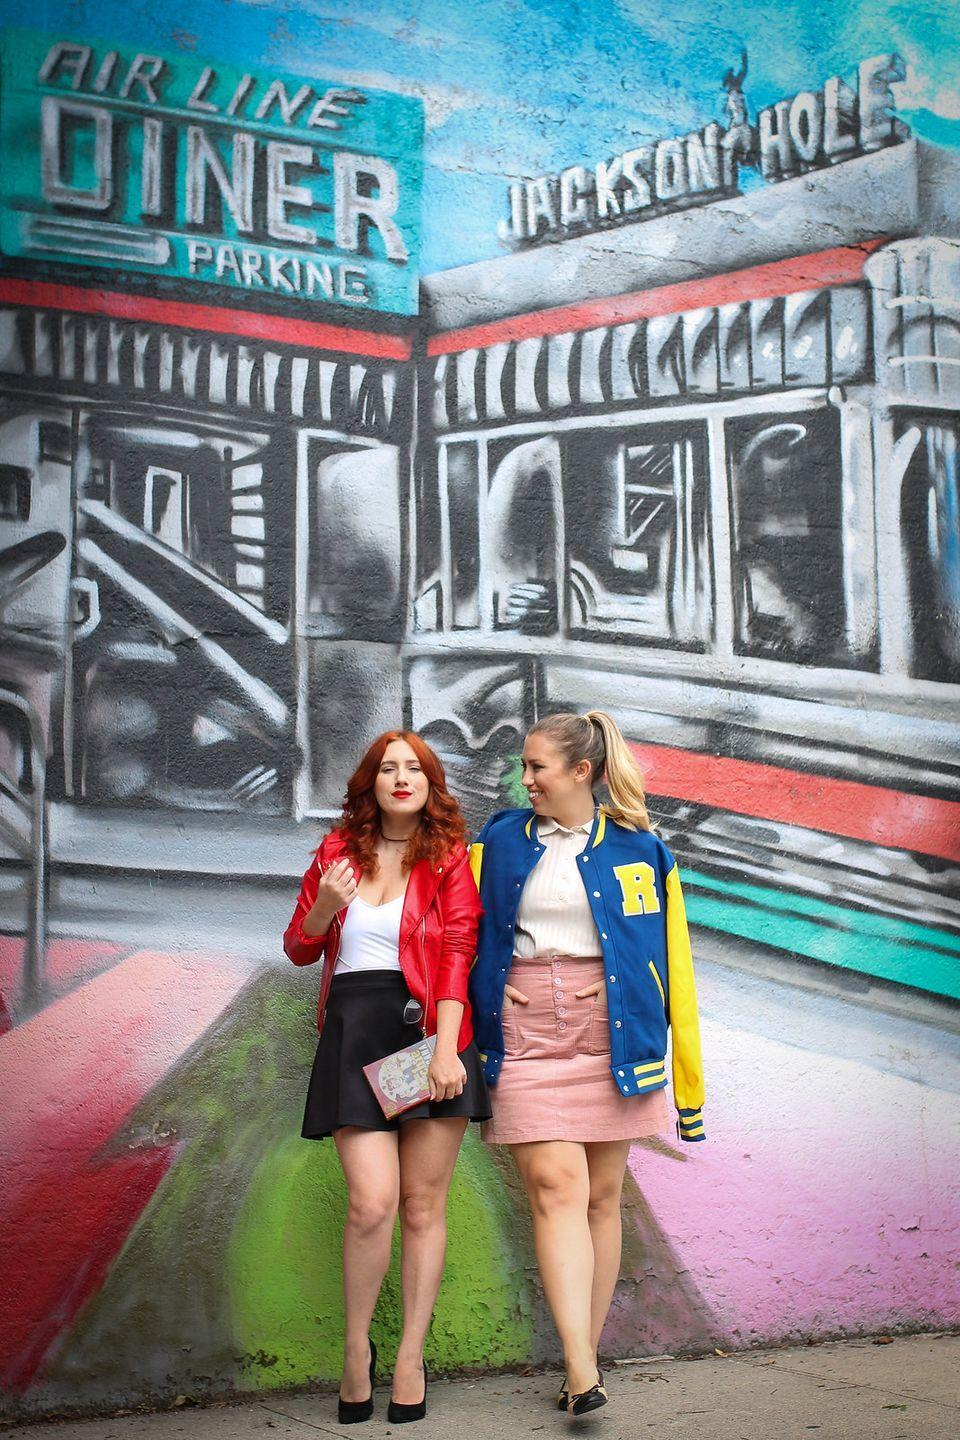 """<p>Since the halls of Riverdale High are typically buzzing about Betty and Cheryl's fashion, steal their style by wearing character-appropriate wigs (blonde for Betty, red for Cheryl) and jackets (old-school varsity for Betty, red leather for Cheryl). </p><p><a class=""""link rapid-noclick-resp"""" href=""""https://www.amazon.com/Tanming-Womens-Leather-Collar-X-Large/dp/B01GTF5OOG/?tag=syn-yahoo-20&ascsubtag=%5Bartid%7C10055.g.29516206%5Bsrc%7Cyahoo-us"""" rel=""""nofollow noopener"""" target=""""_blank"""" data-ylk=""""slk:SHOP RED JACKETS"""">SHOP RED JACKETS</a></p><p><a class=""""link rapid-noclick-resp"""" href=""""https://www.amazon.com/Rubies-Riverdale-Deluxe-Andrews-Standard/dp/B07D6TWFSF/?tag=syn-yahoo-20&ascsubtag=%5Bartid%7C10055.g.29516206%5Bsrc%7Cyahoo-us"""" rel=""""nofollow noopener"""" target=""""_blank"""" data-ylk=""""slk:SHOP VARSITY JACKETS"""">SHOP VARSITY JACKETS</a></p><p><em><a href=""""http://livingaftermidnite.com/2018/10/easy-riverdale-halloween-costumes.html"""" rel=""""nofollow noopener"""" target=""""_blank"""" data-ylk=""""slk:Get the tutorial at Living After Midnite »"""" class=""""link rapid-noclick-resp"""">Get the tutorial at Living After Midnite »</a></em><br></p>"""